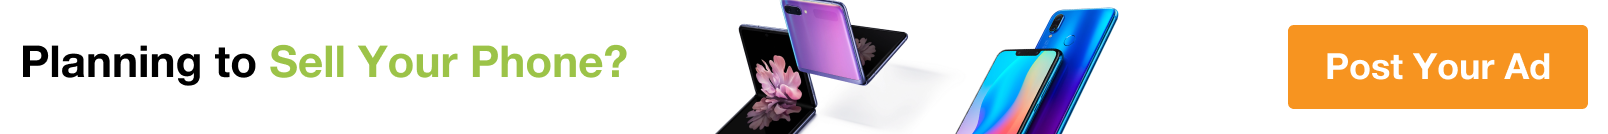 Mobile - Tablet Infinix for sale in Egypt